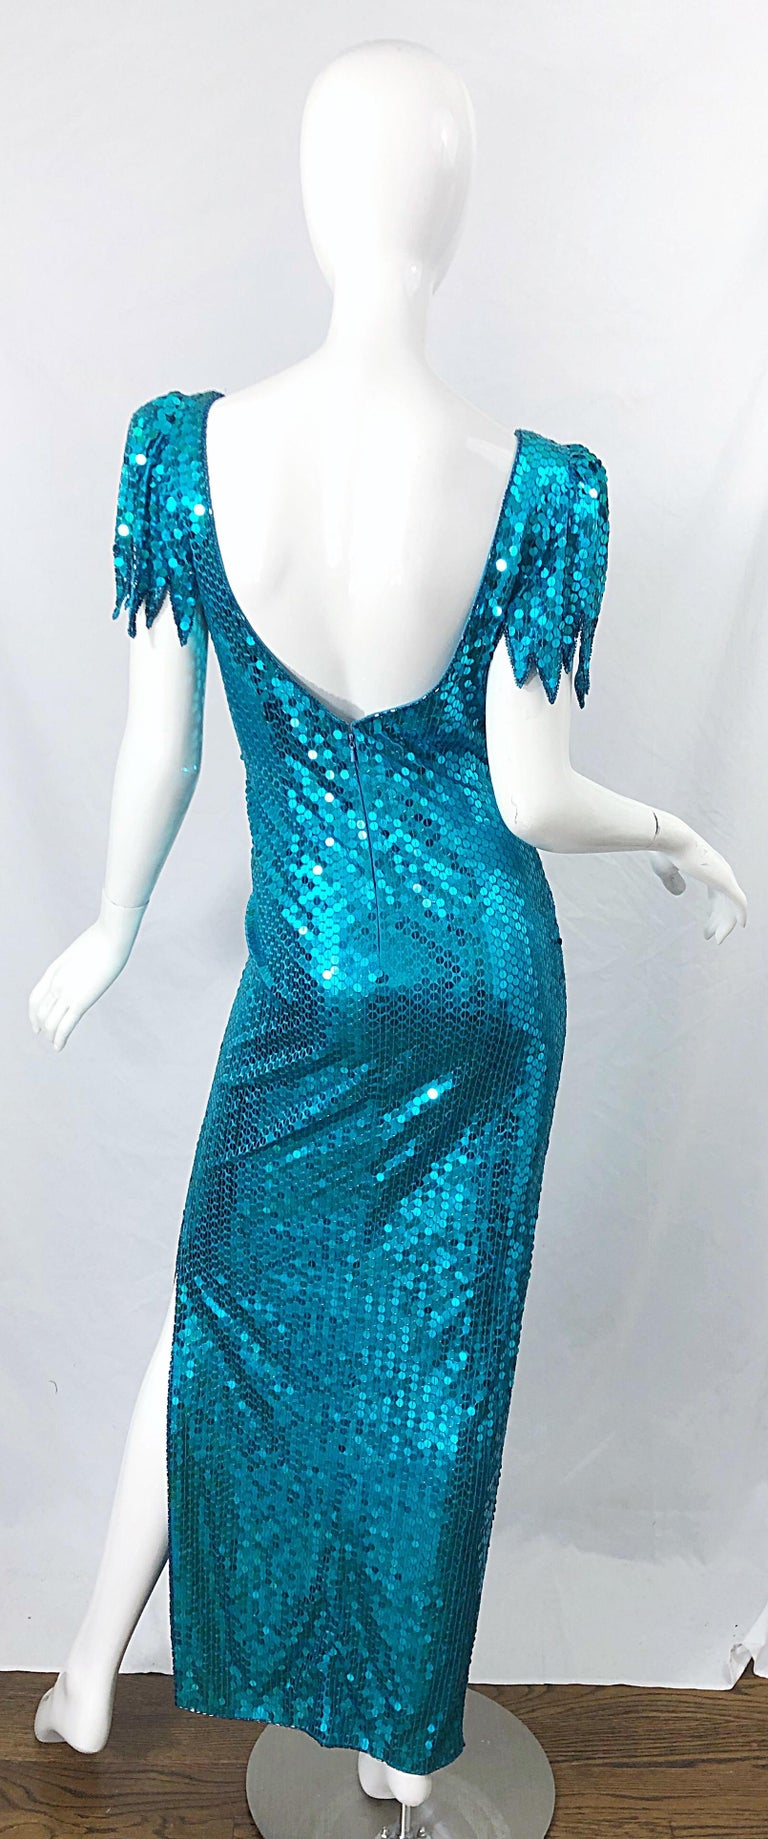 Women's 1980s Ted Lapidus Size 10 Turquoise Blue Avant Garde Sequined Vintage 80s Gown  For Sale